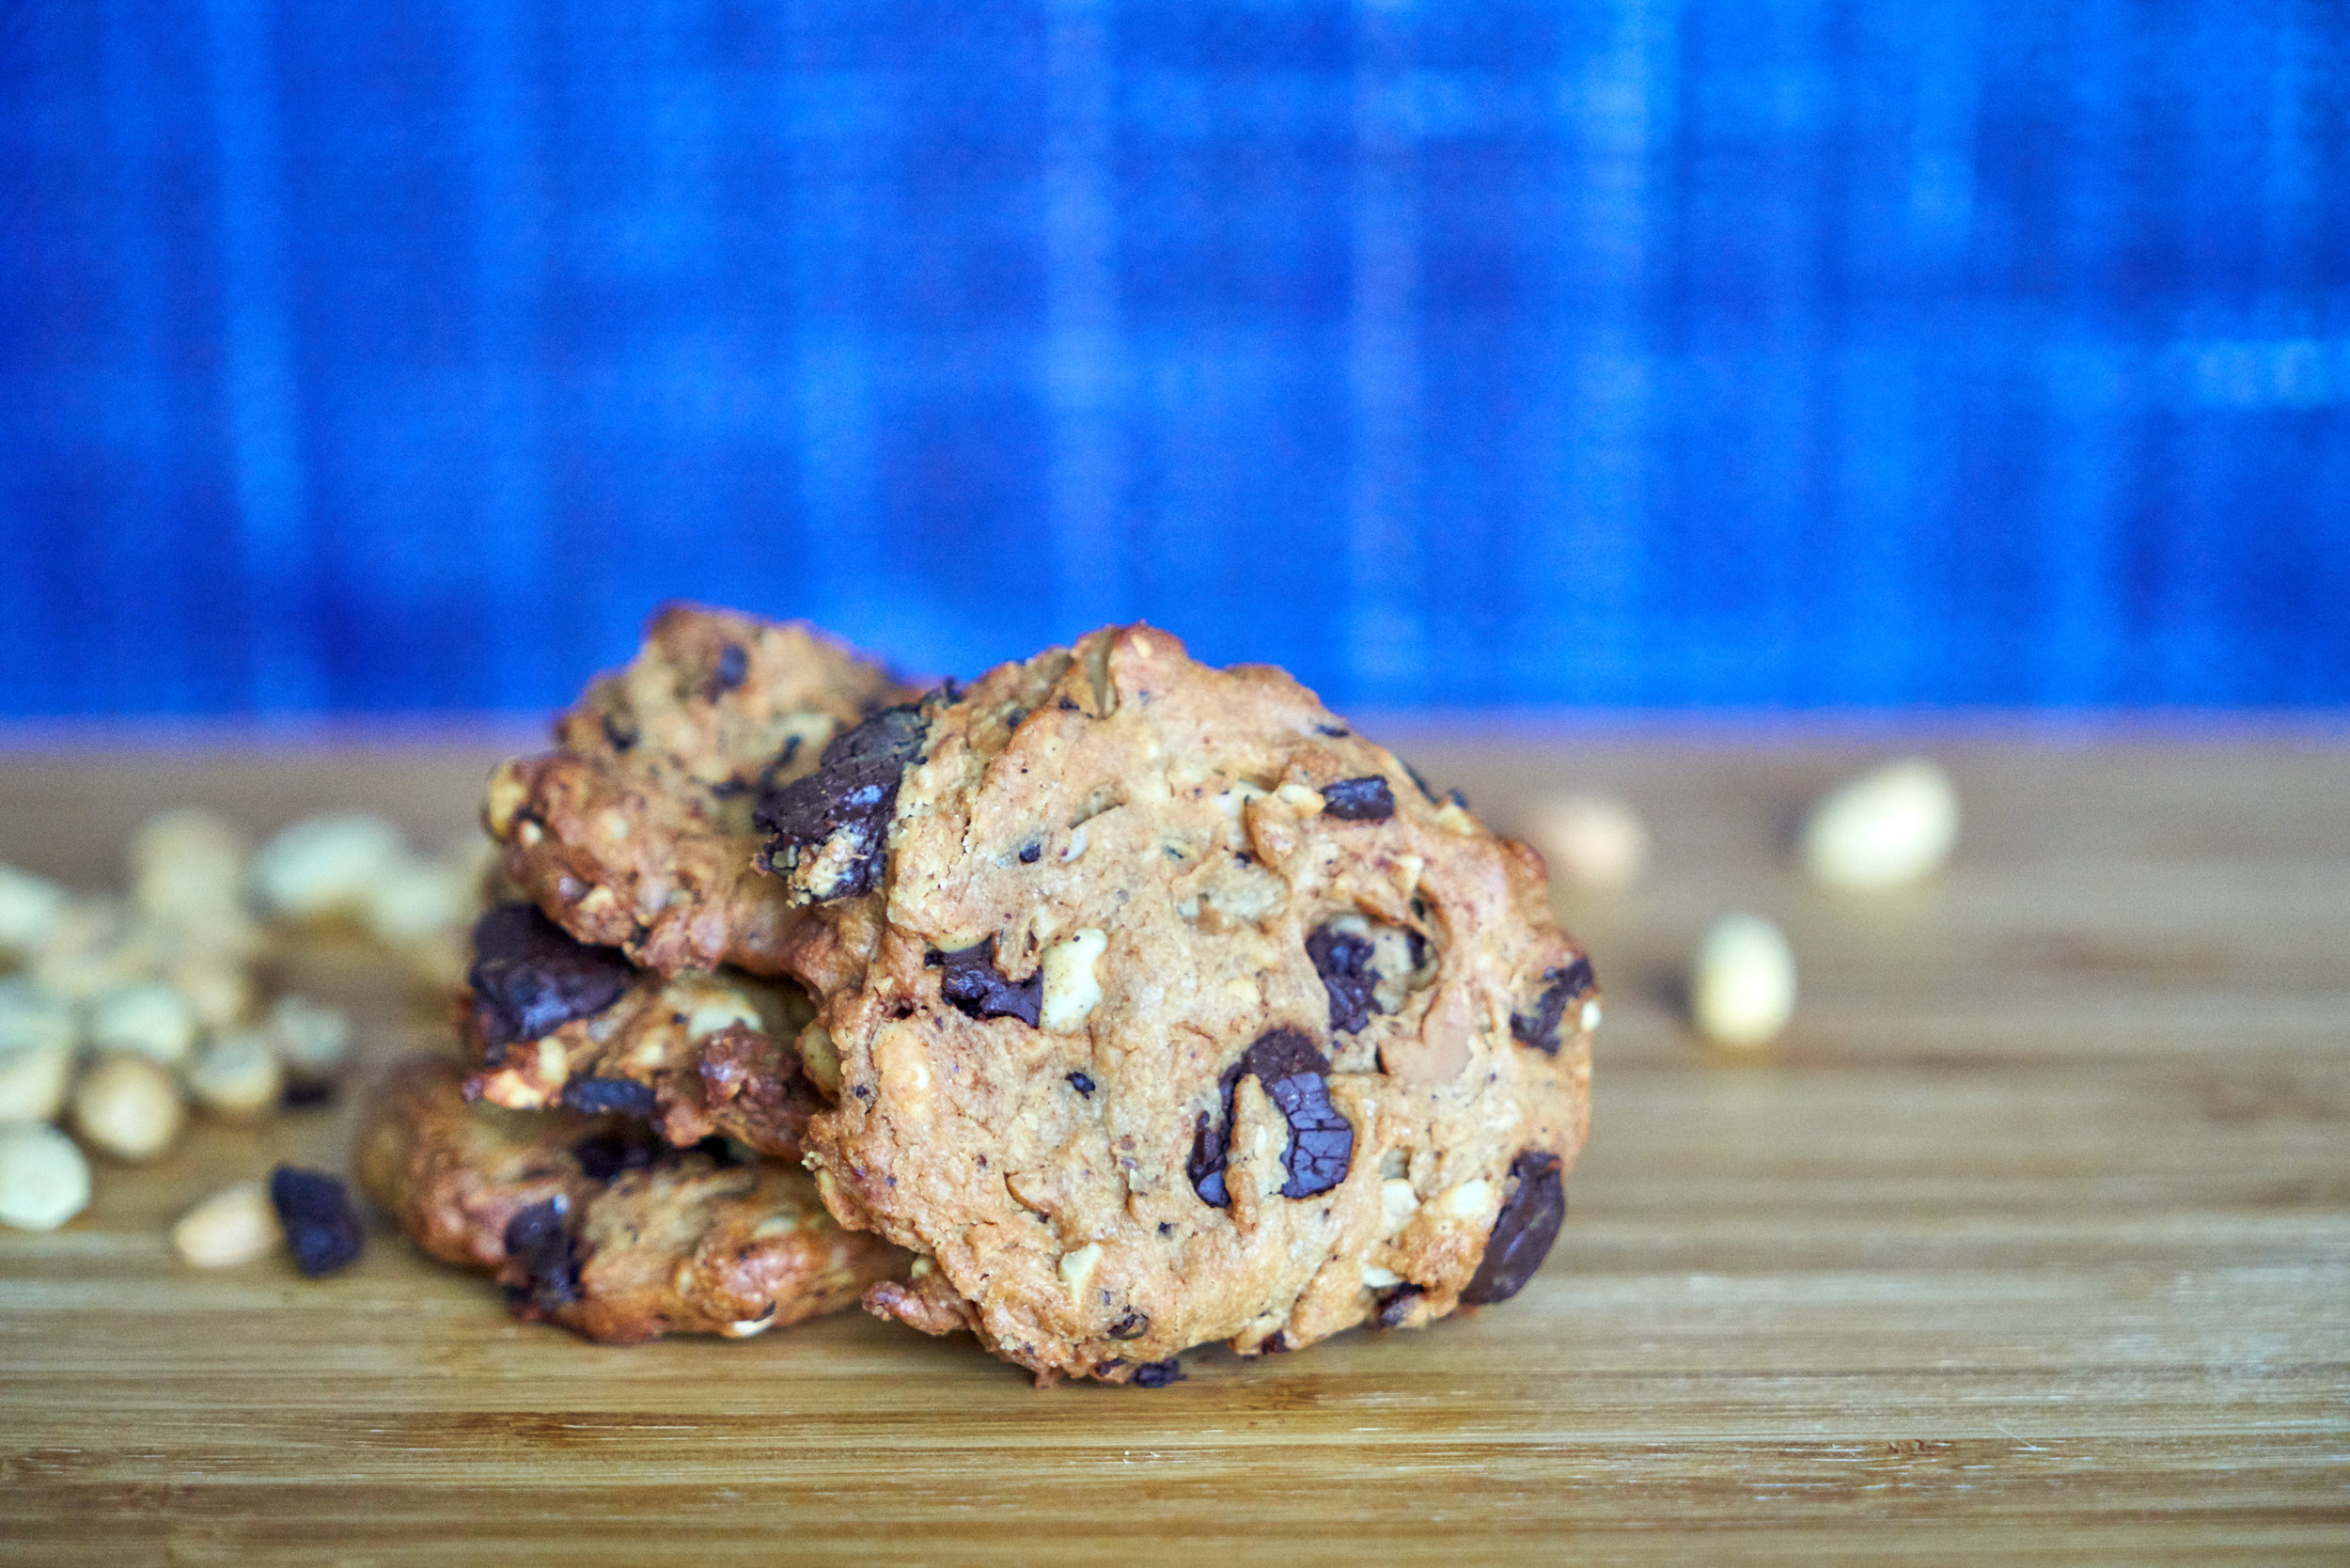 Meat-Free Monday Meal Prep | Full Day Meal Plan - snack: sugar-free peanut butter cookies | In Carina's Kitchen